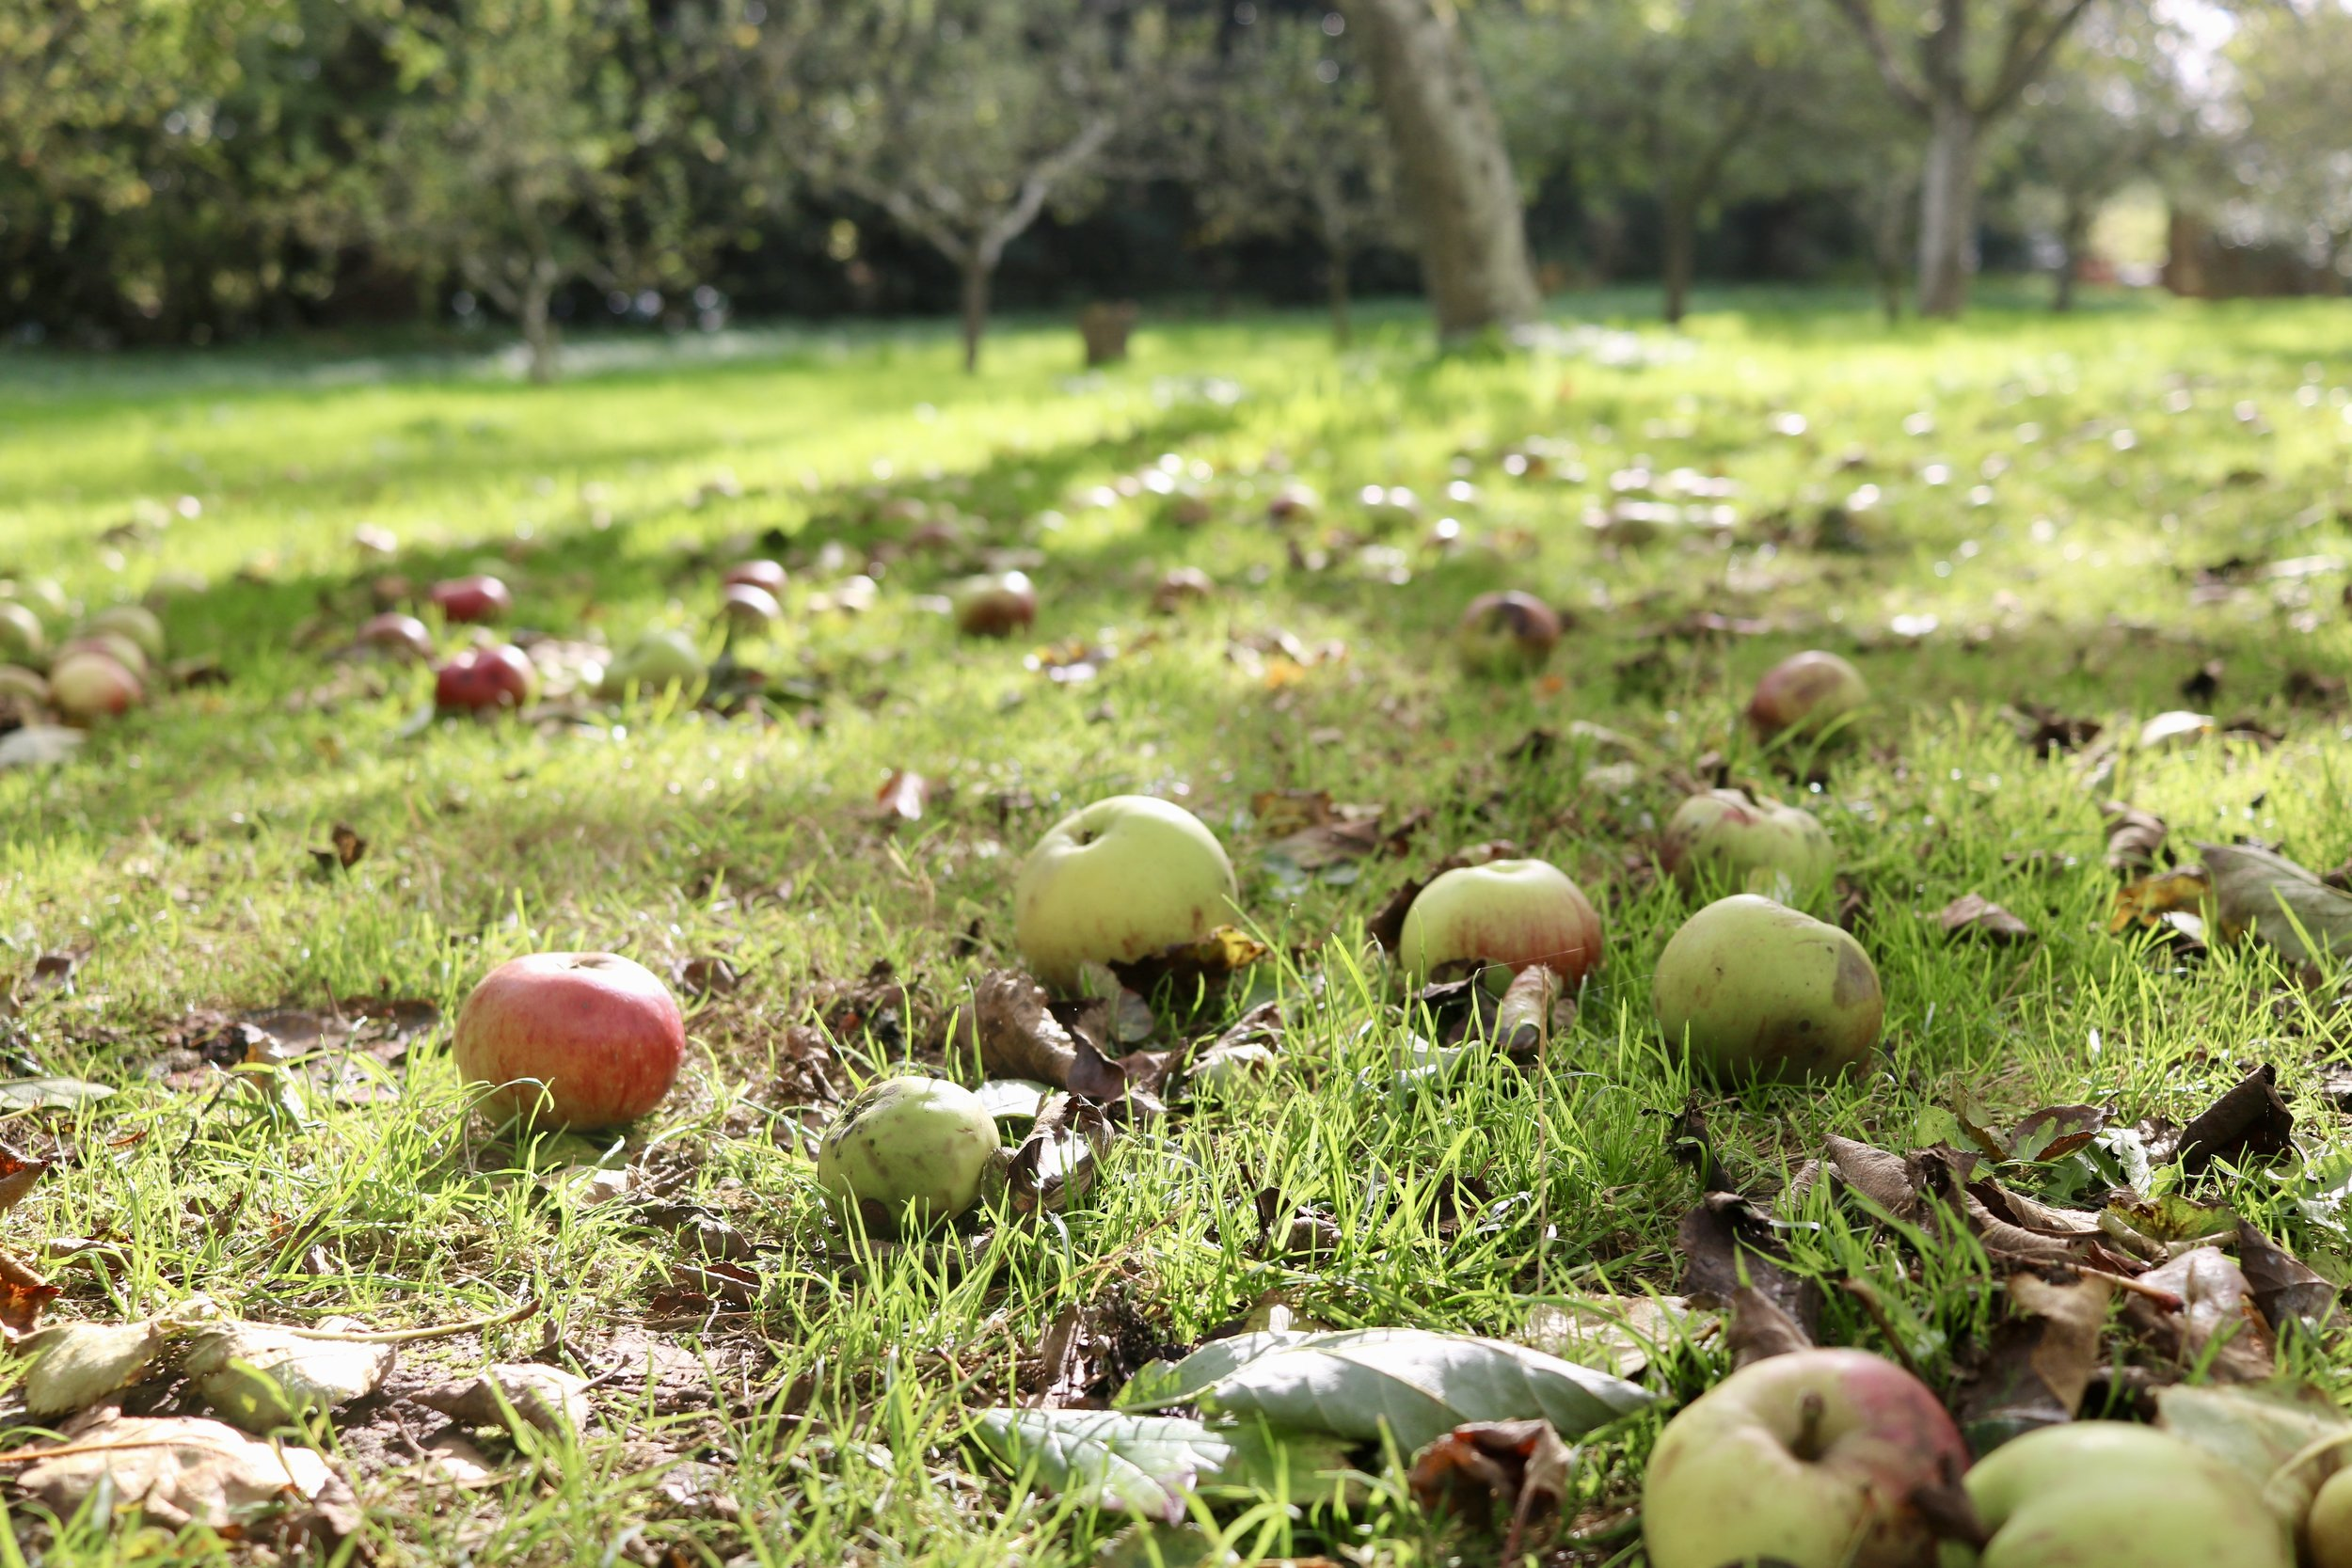 Fallen apples on the ground in the Cotswolds, England